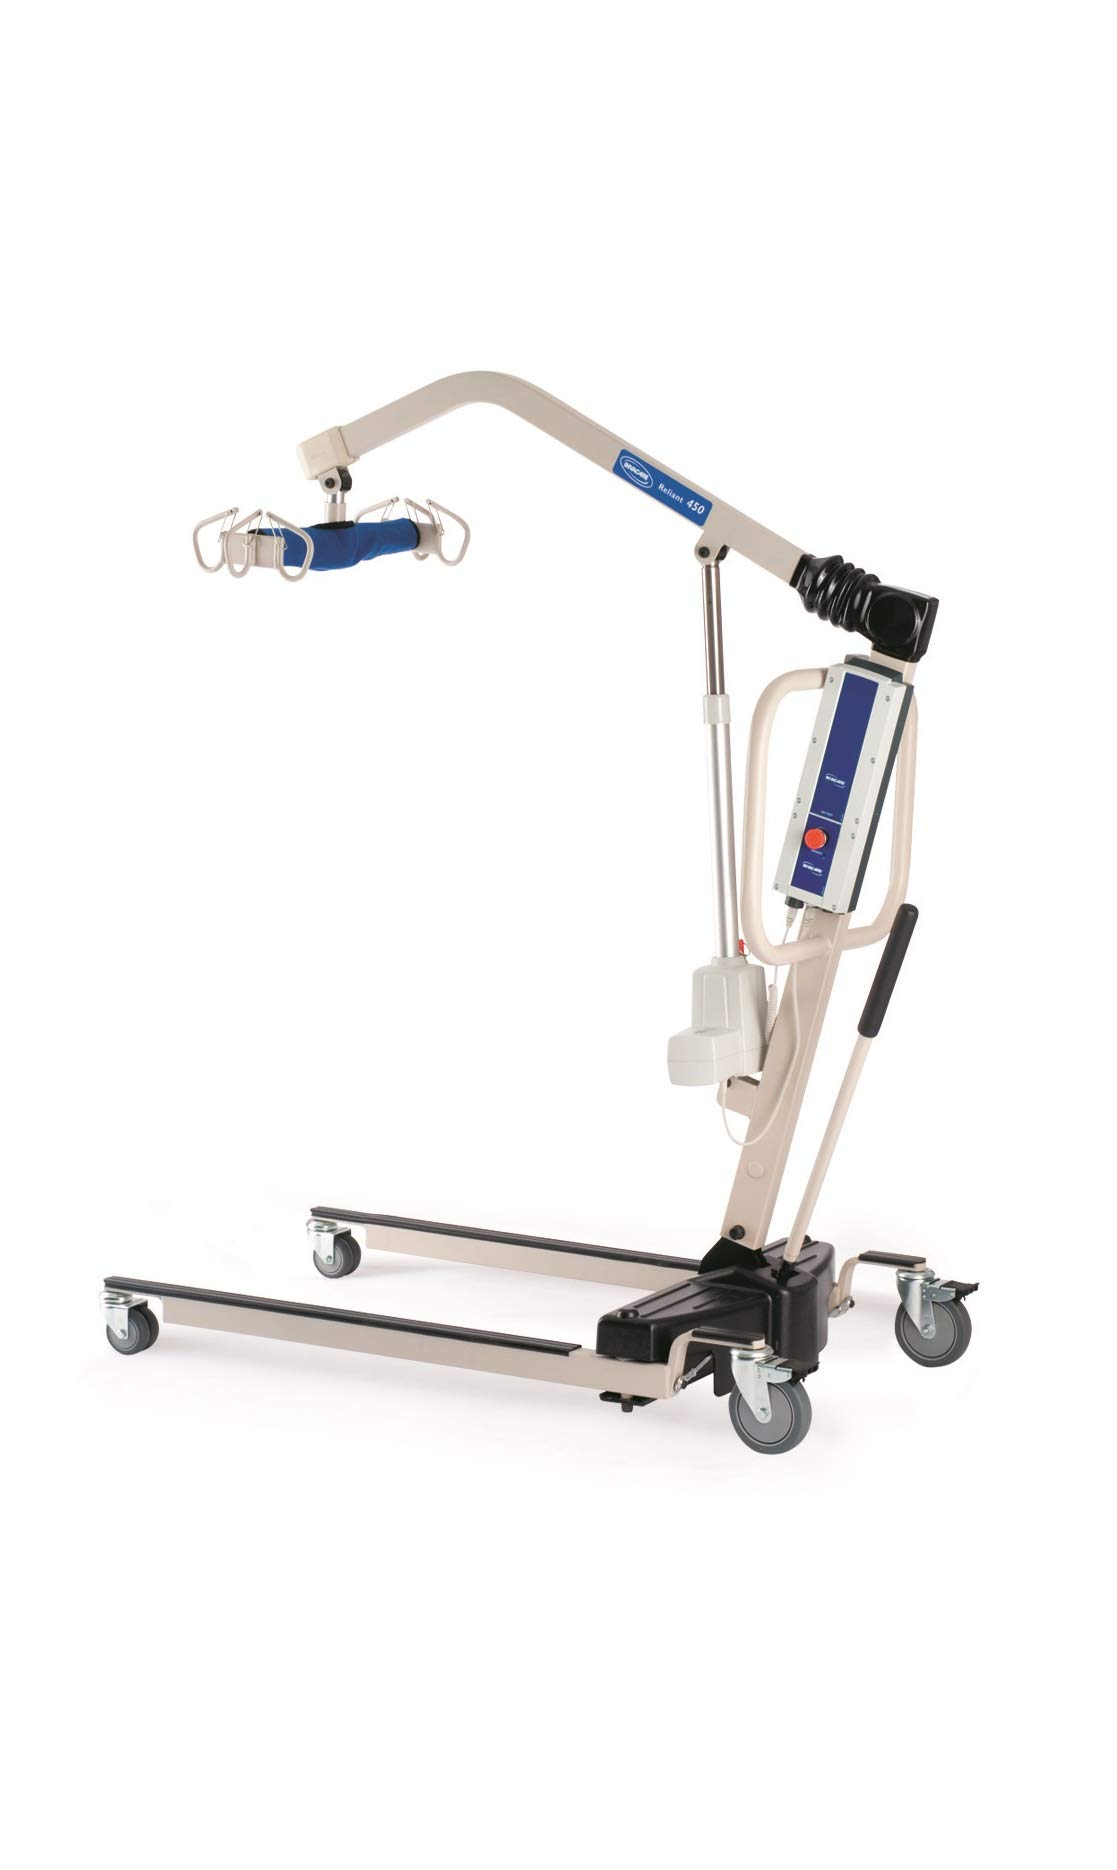 Invacare RPL450-1 Power Body Patient Lift (Invacare Reliant 450 Battery-Powered Lift with Low Base - RPL4501)